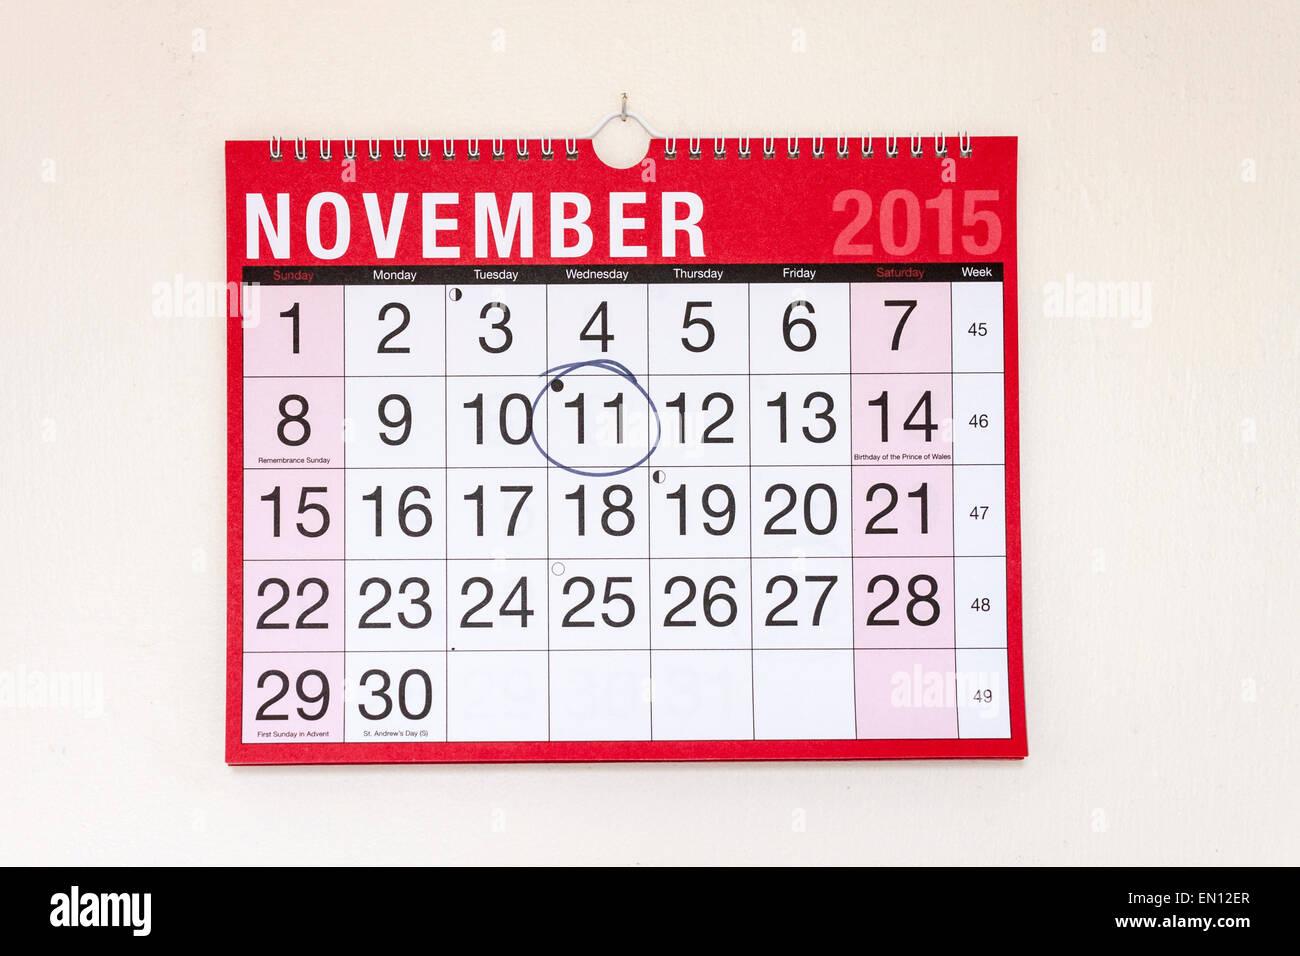 Monthly wall calendar November 2015, Remembrance Day circled - Stock Image